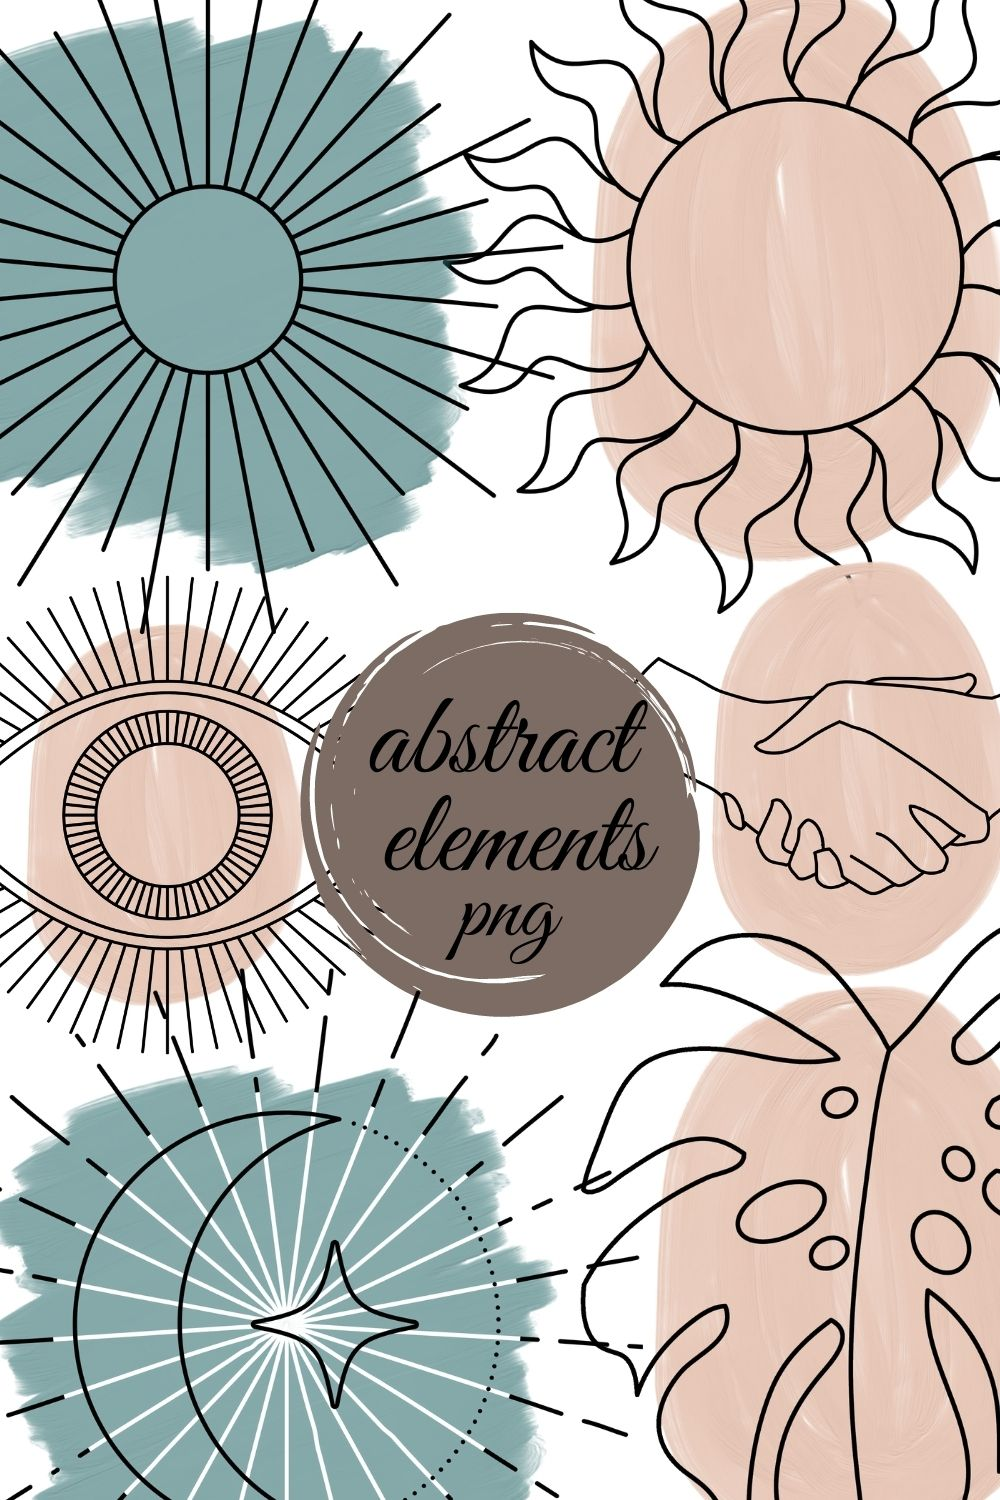 Abstract Boho Elements Png Flower Png Design Elements Etsy Bohemian Wall Art Boho Elements Design Elements